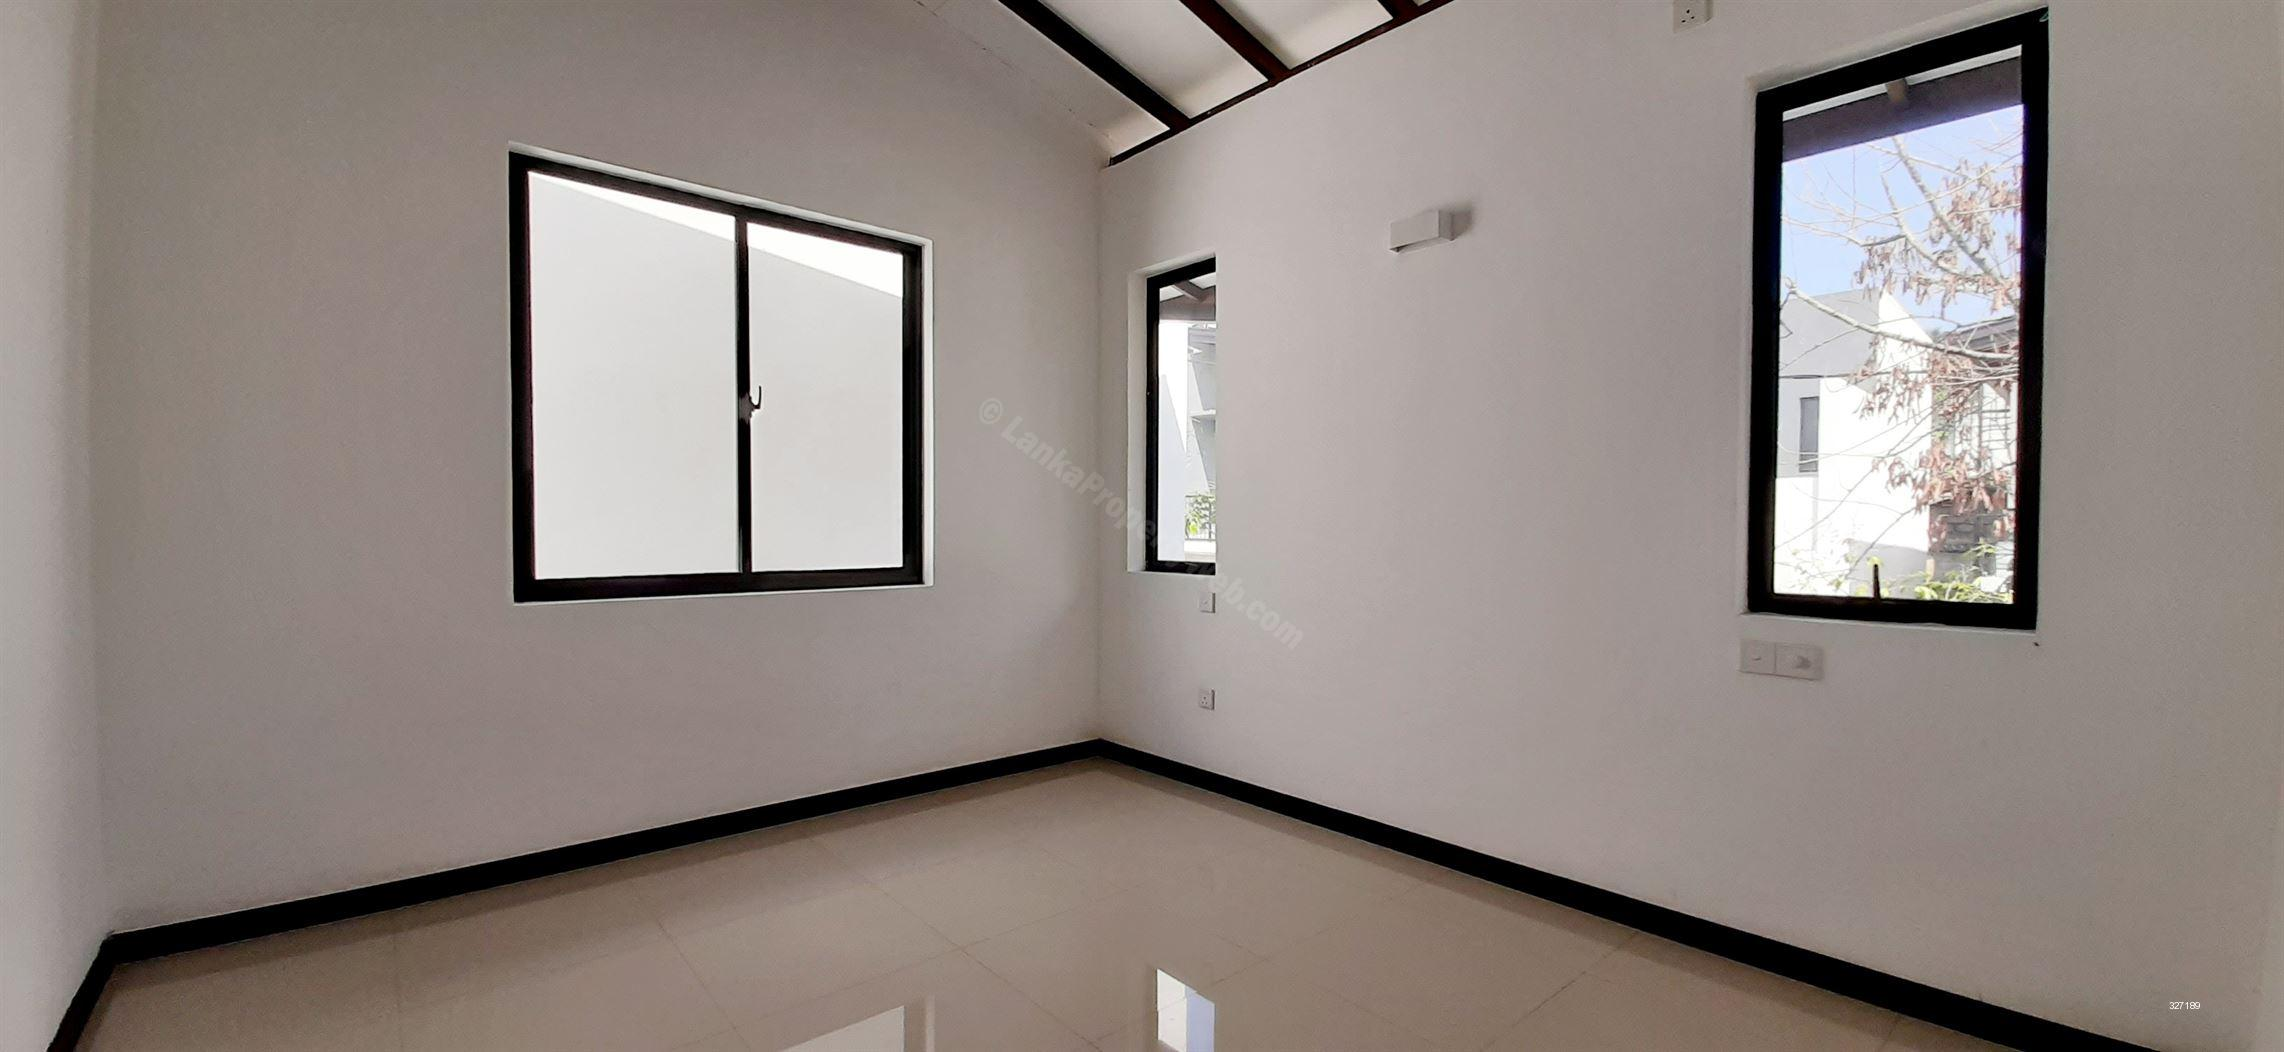 House for sale in Pannipitiya - (4856) Brand New 2 Storied House for Sale, Pannipitiya